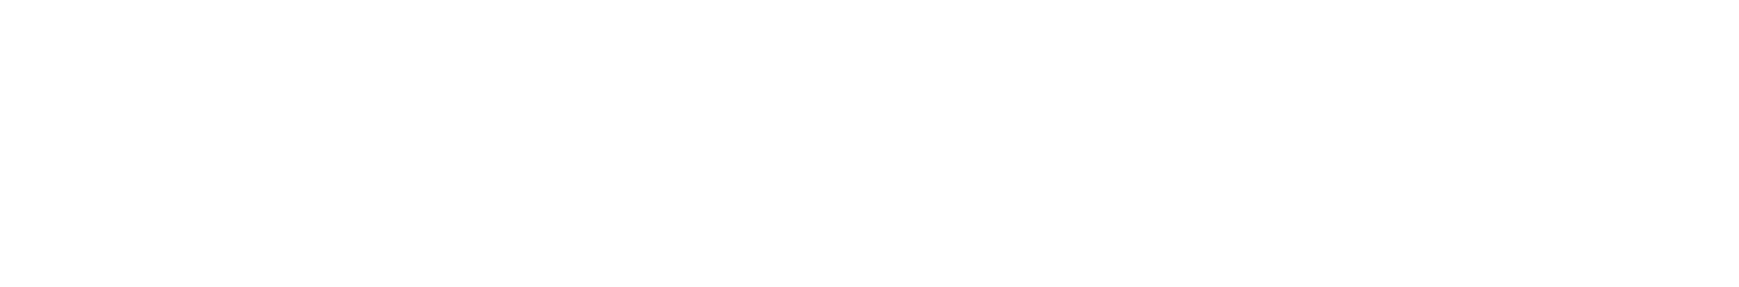 shape-white.png